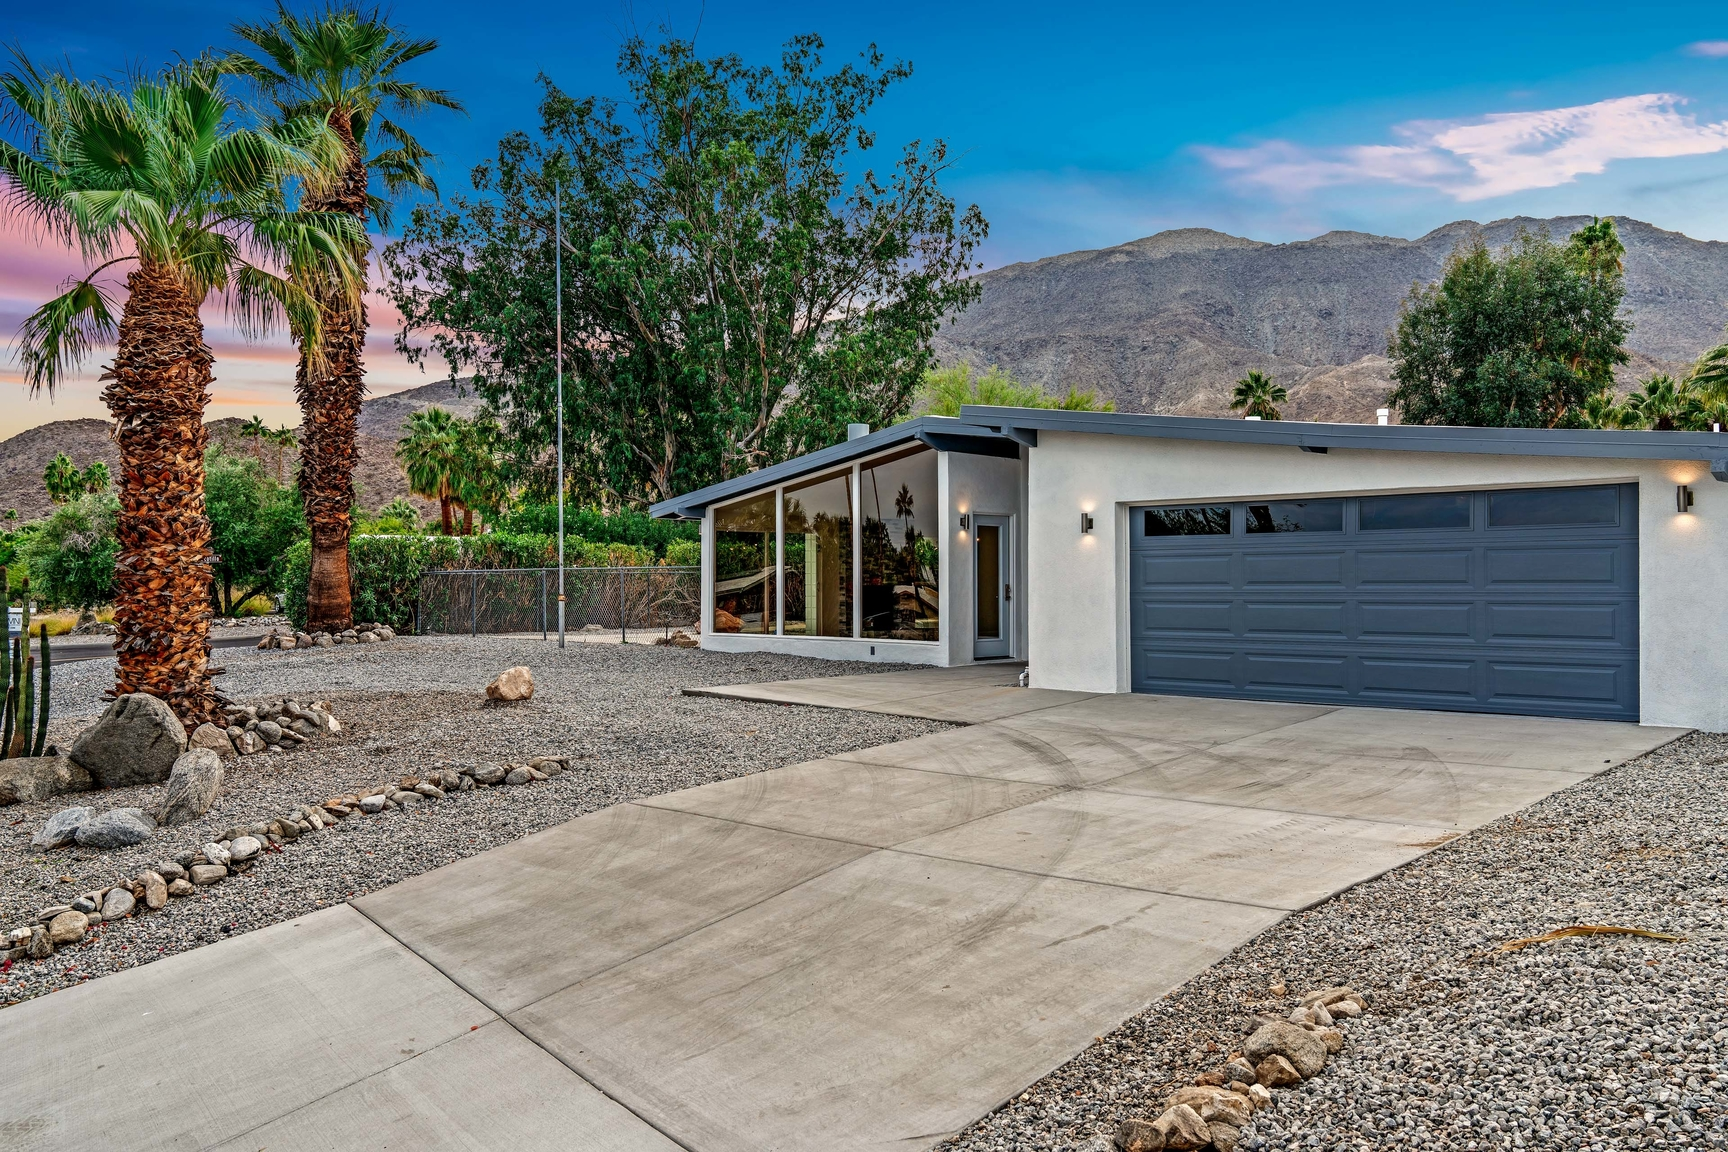 71621 Mirage Road | Rancho Mirage | $799,000